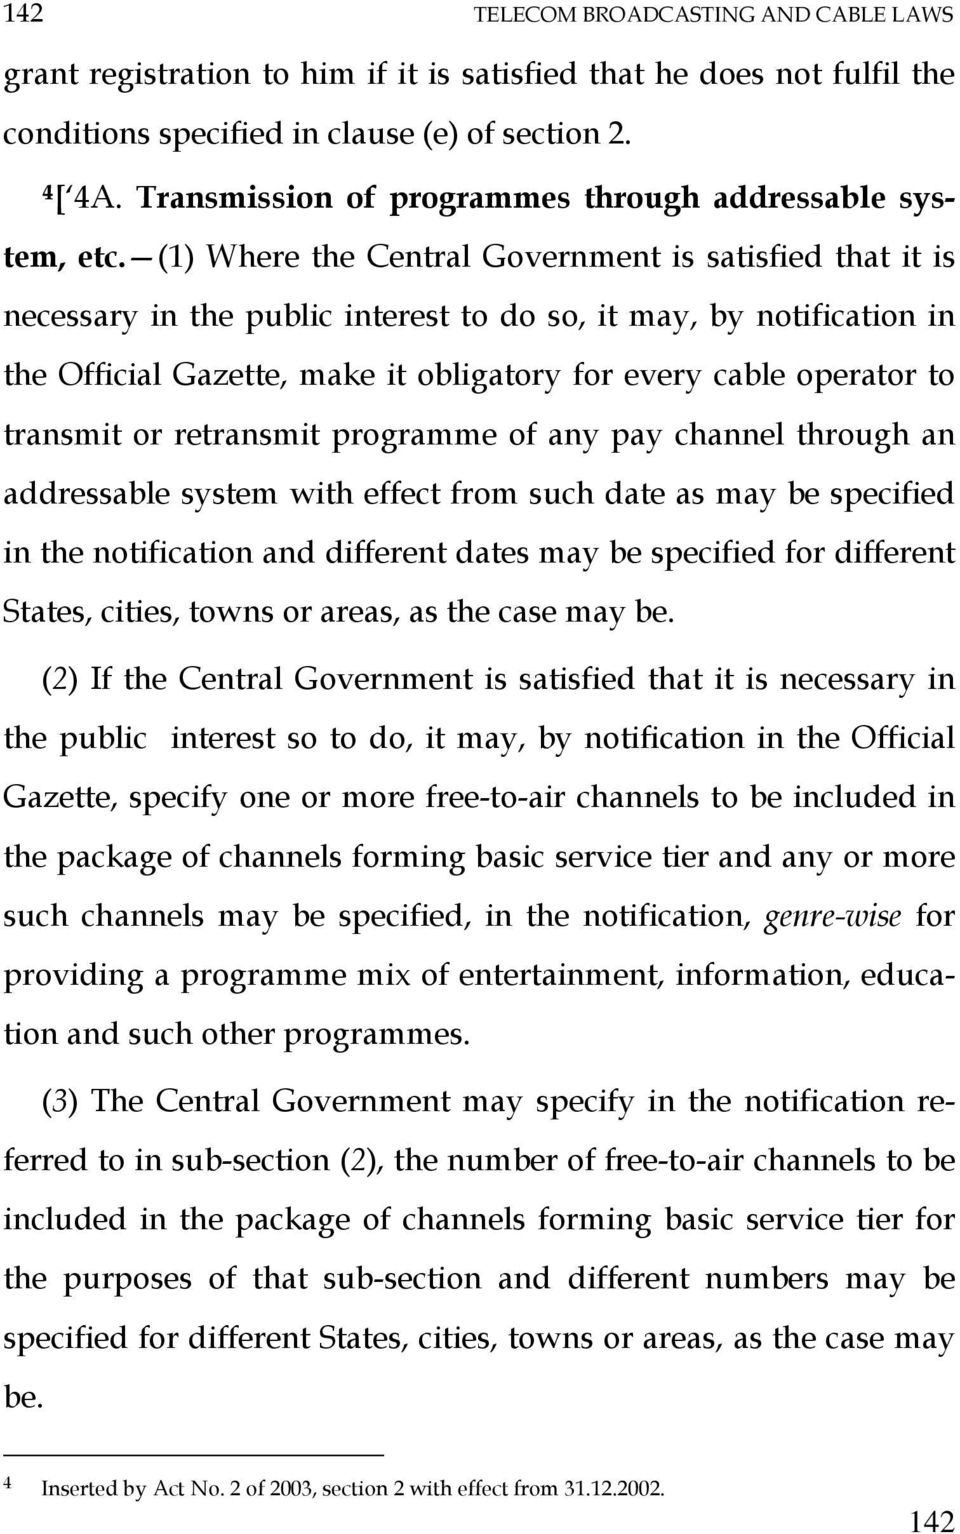 (1) Where the Central Government is satisfied that it is necessary in the public interest to do so, it may, by notification in the Official Gazette, make it obligatory for every cable operator to